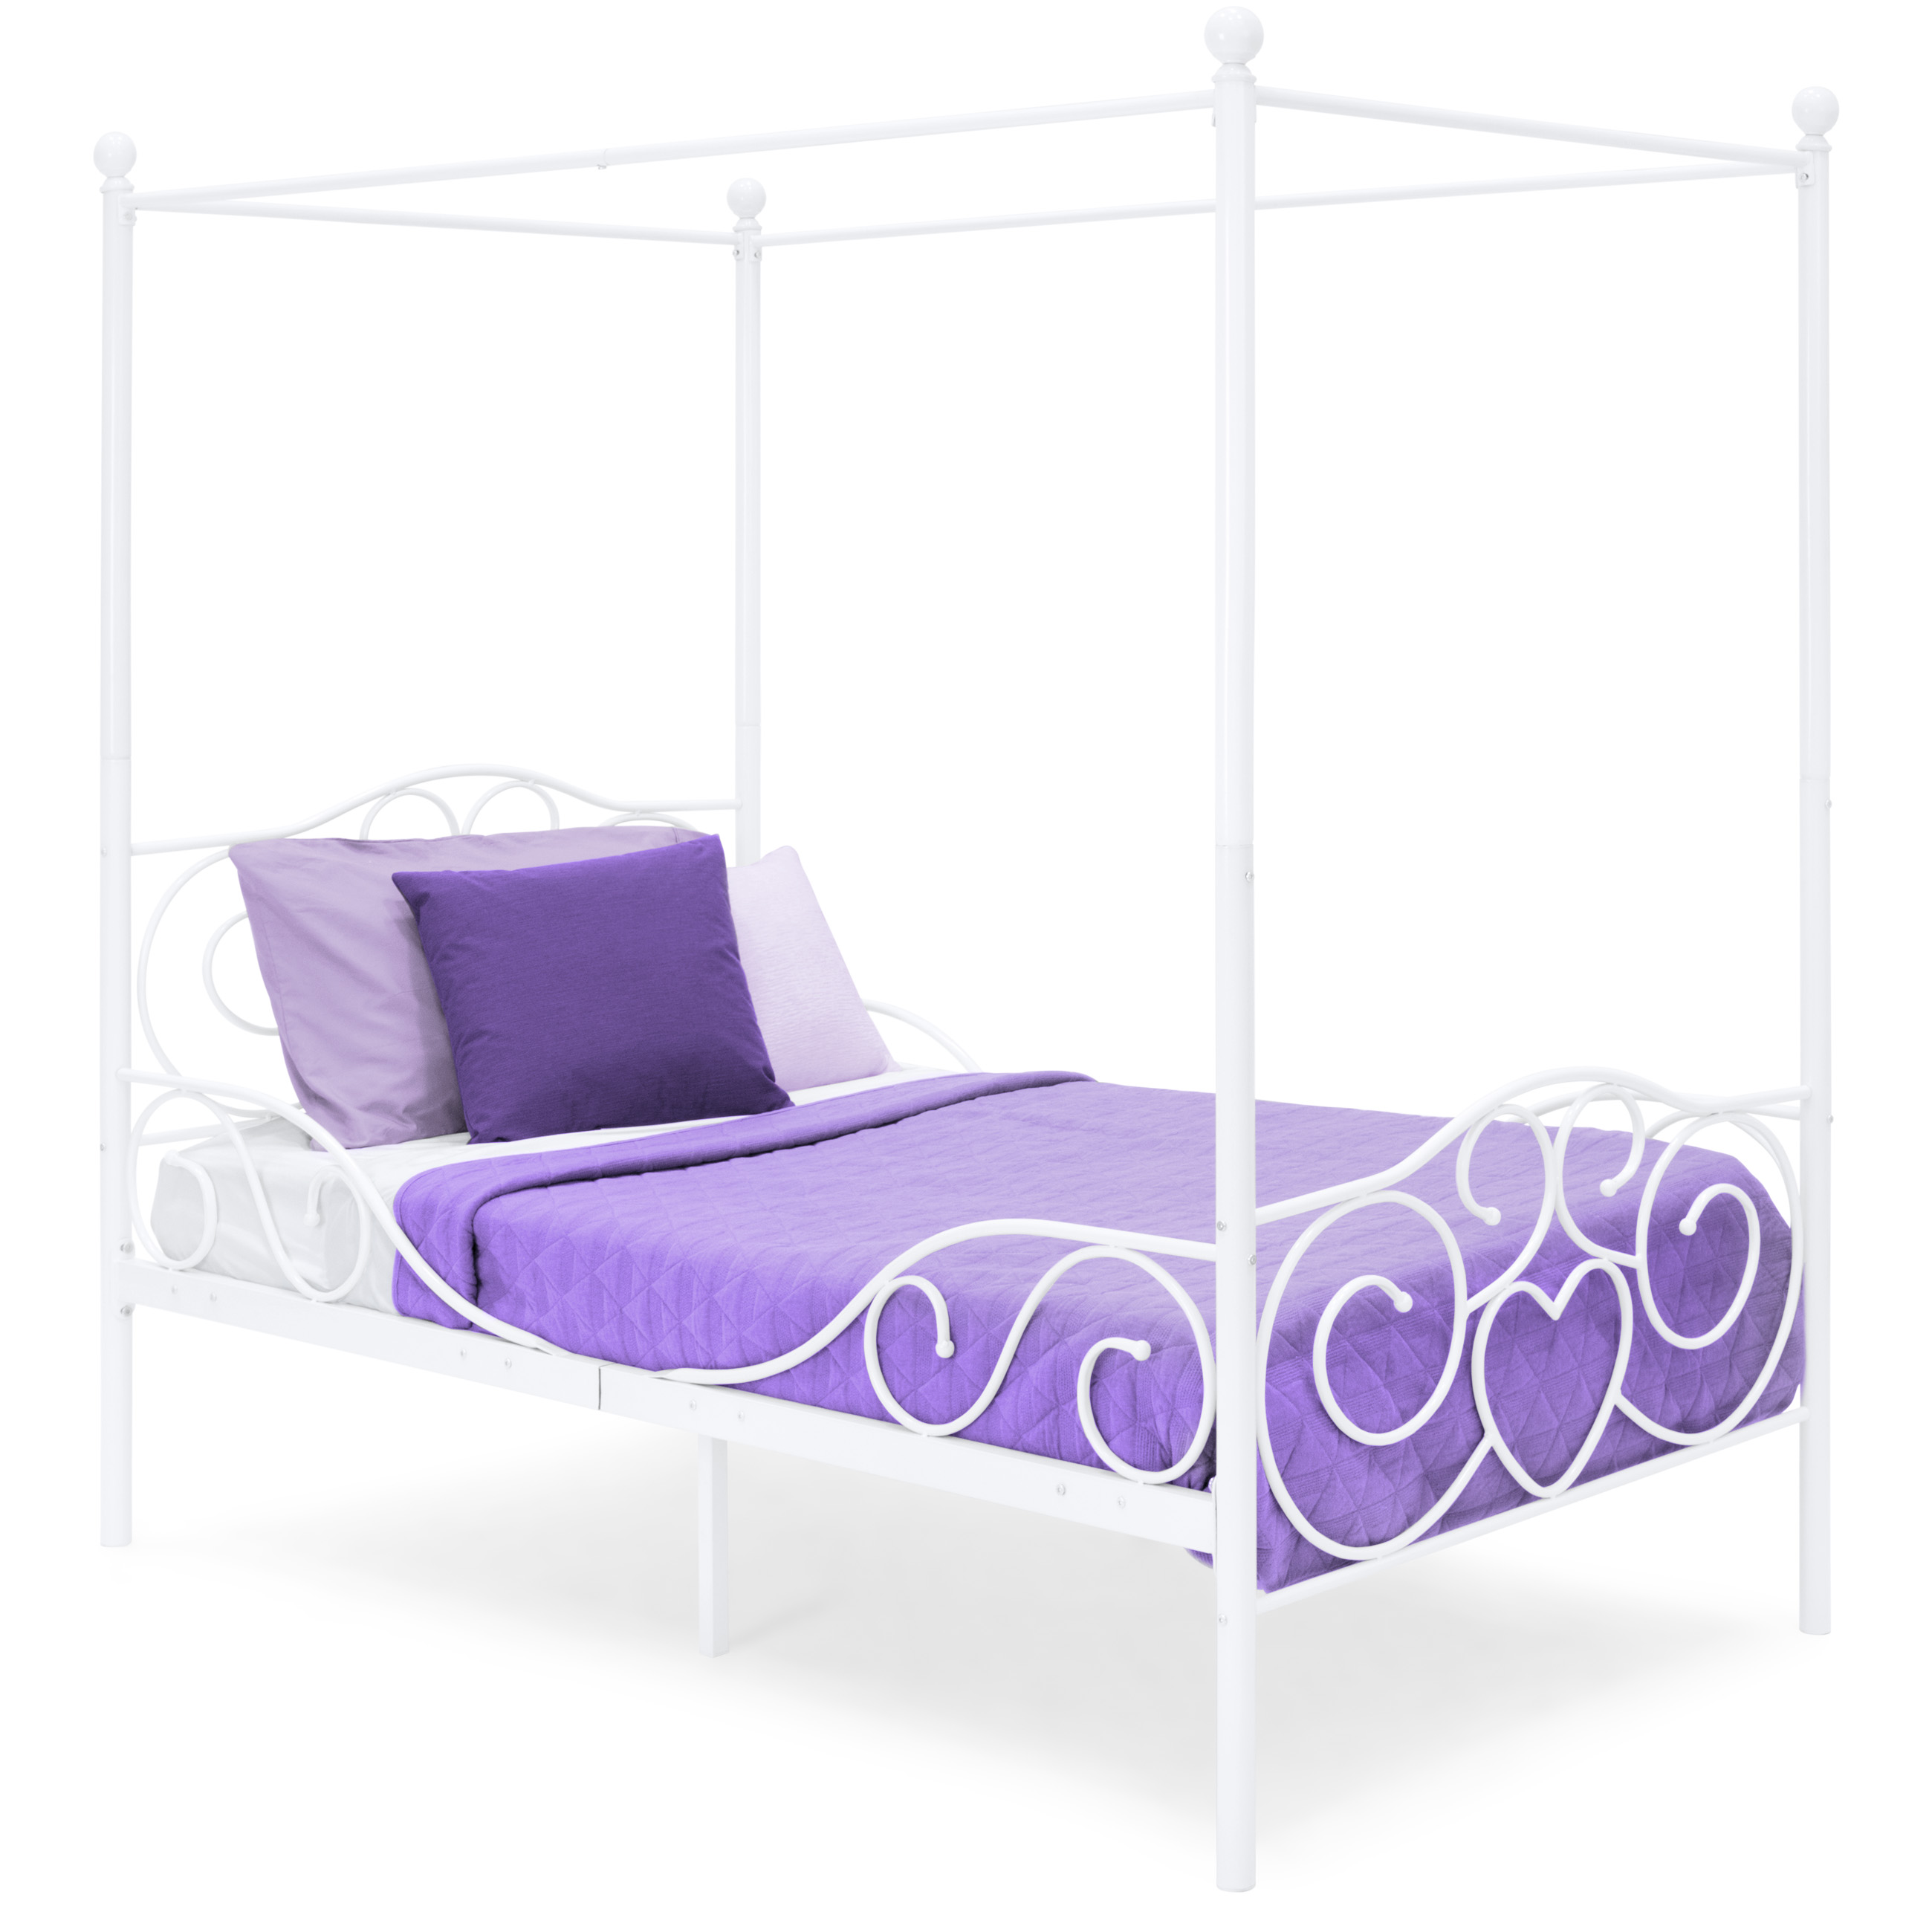 Best Choice Products 4 Post Metal Canopy Twin Bed Frame w  Heart Scroll Design, Slats, Headboard, and Footboard White by Best Choice Products